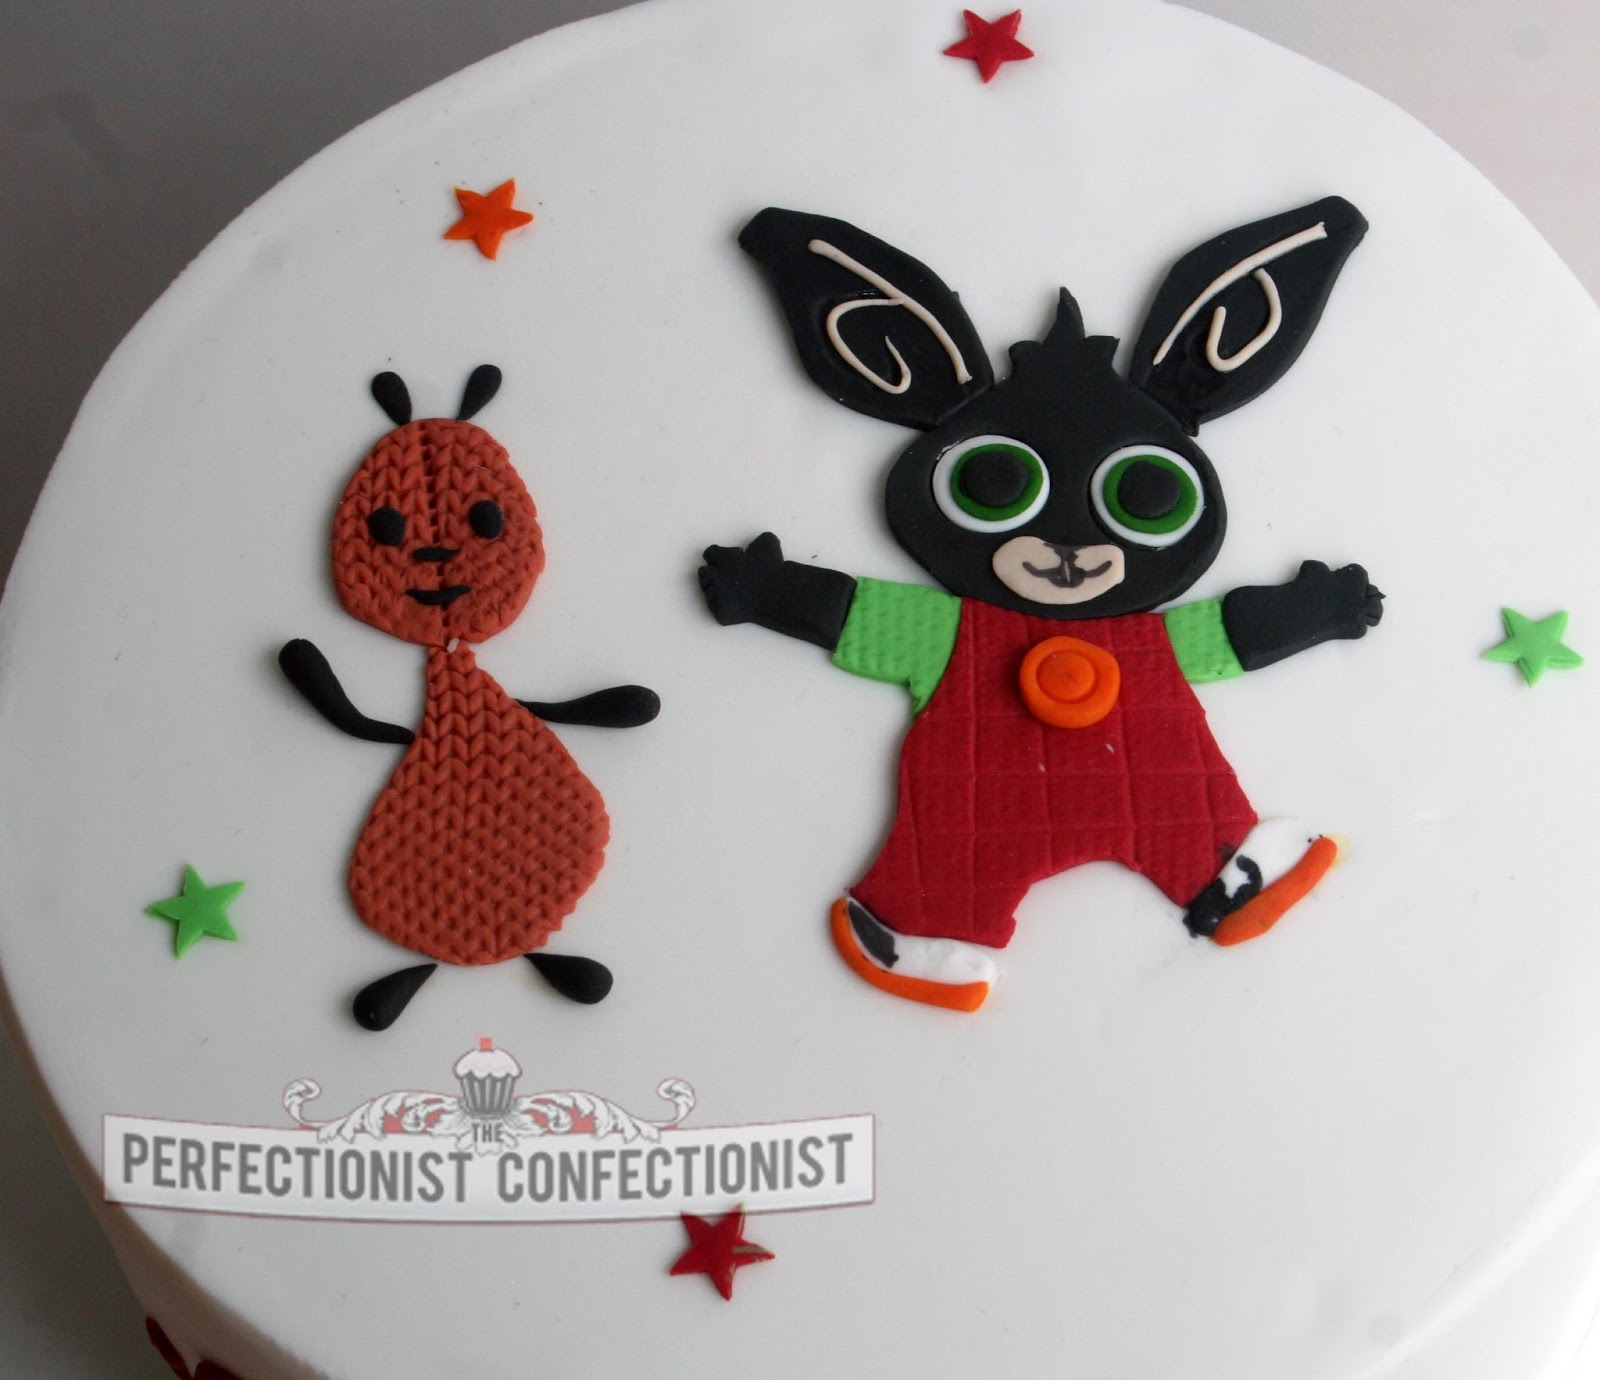 The Perfectionist Confectionist Luke Bing and Flop Birthday Cake